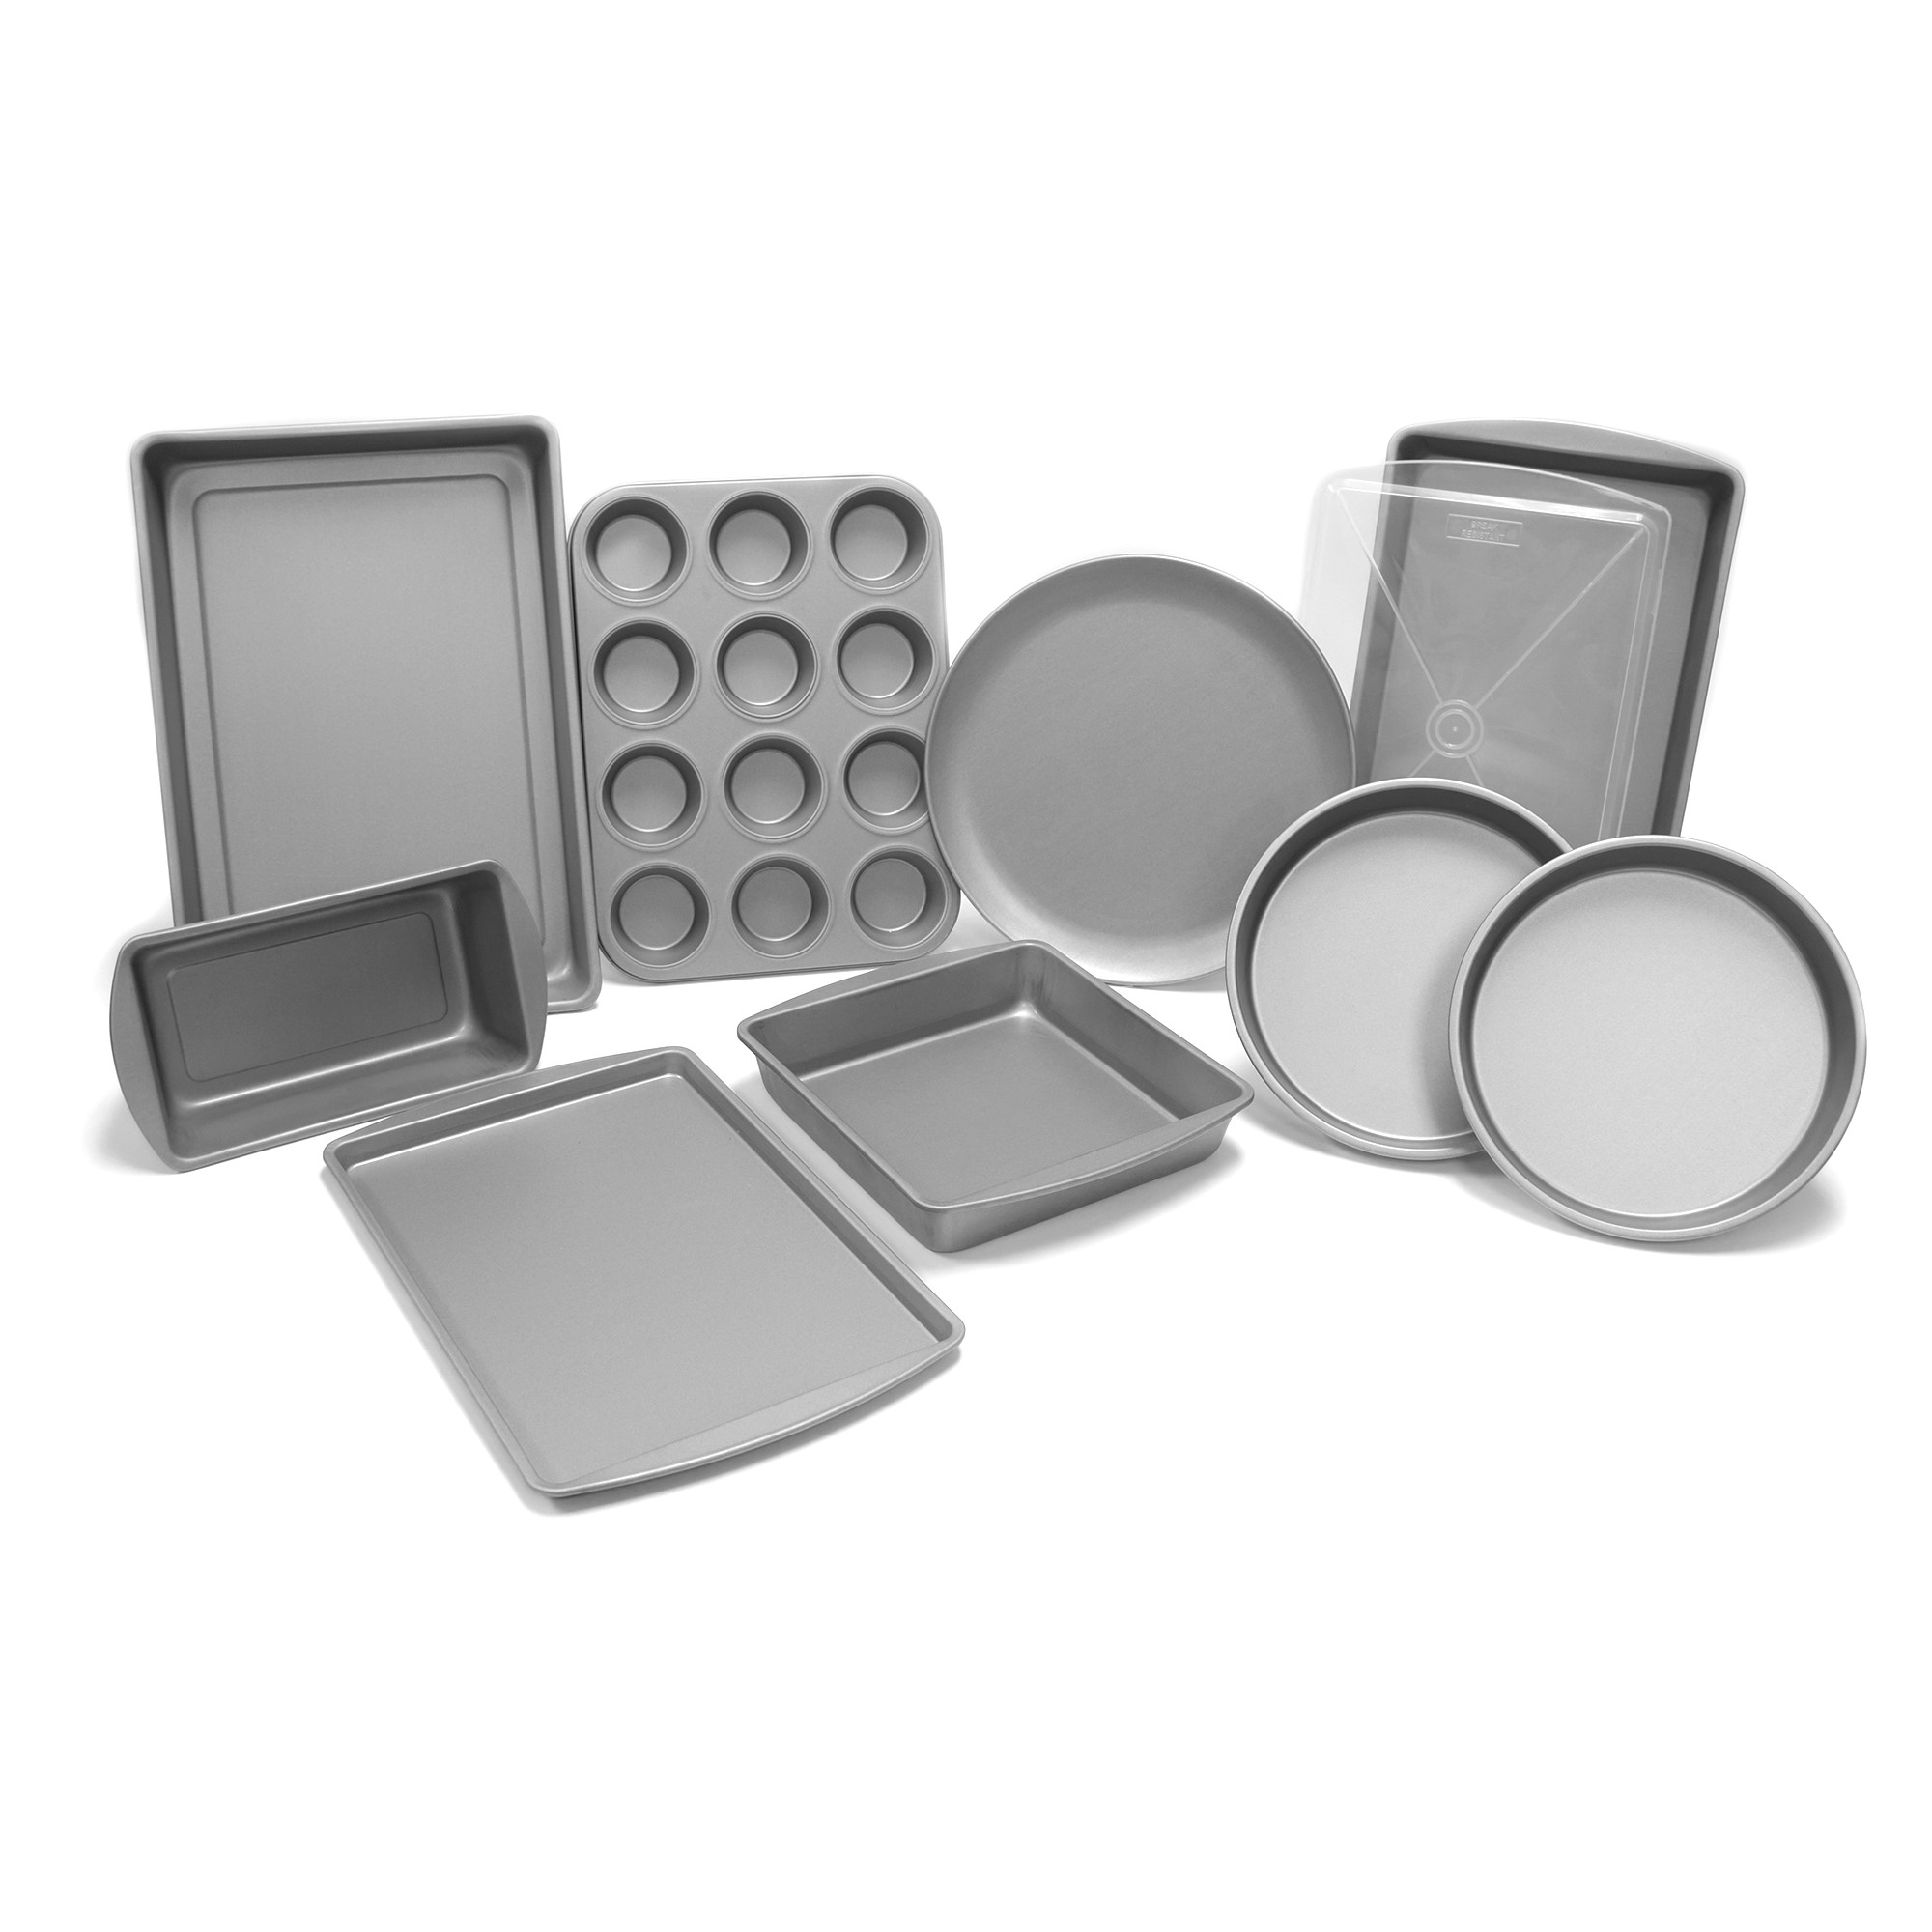 G & S Metal Products, Co. Overstuff DuraGlide Plus Bakeware Set (10 Piece)